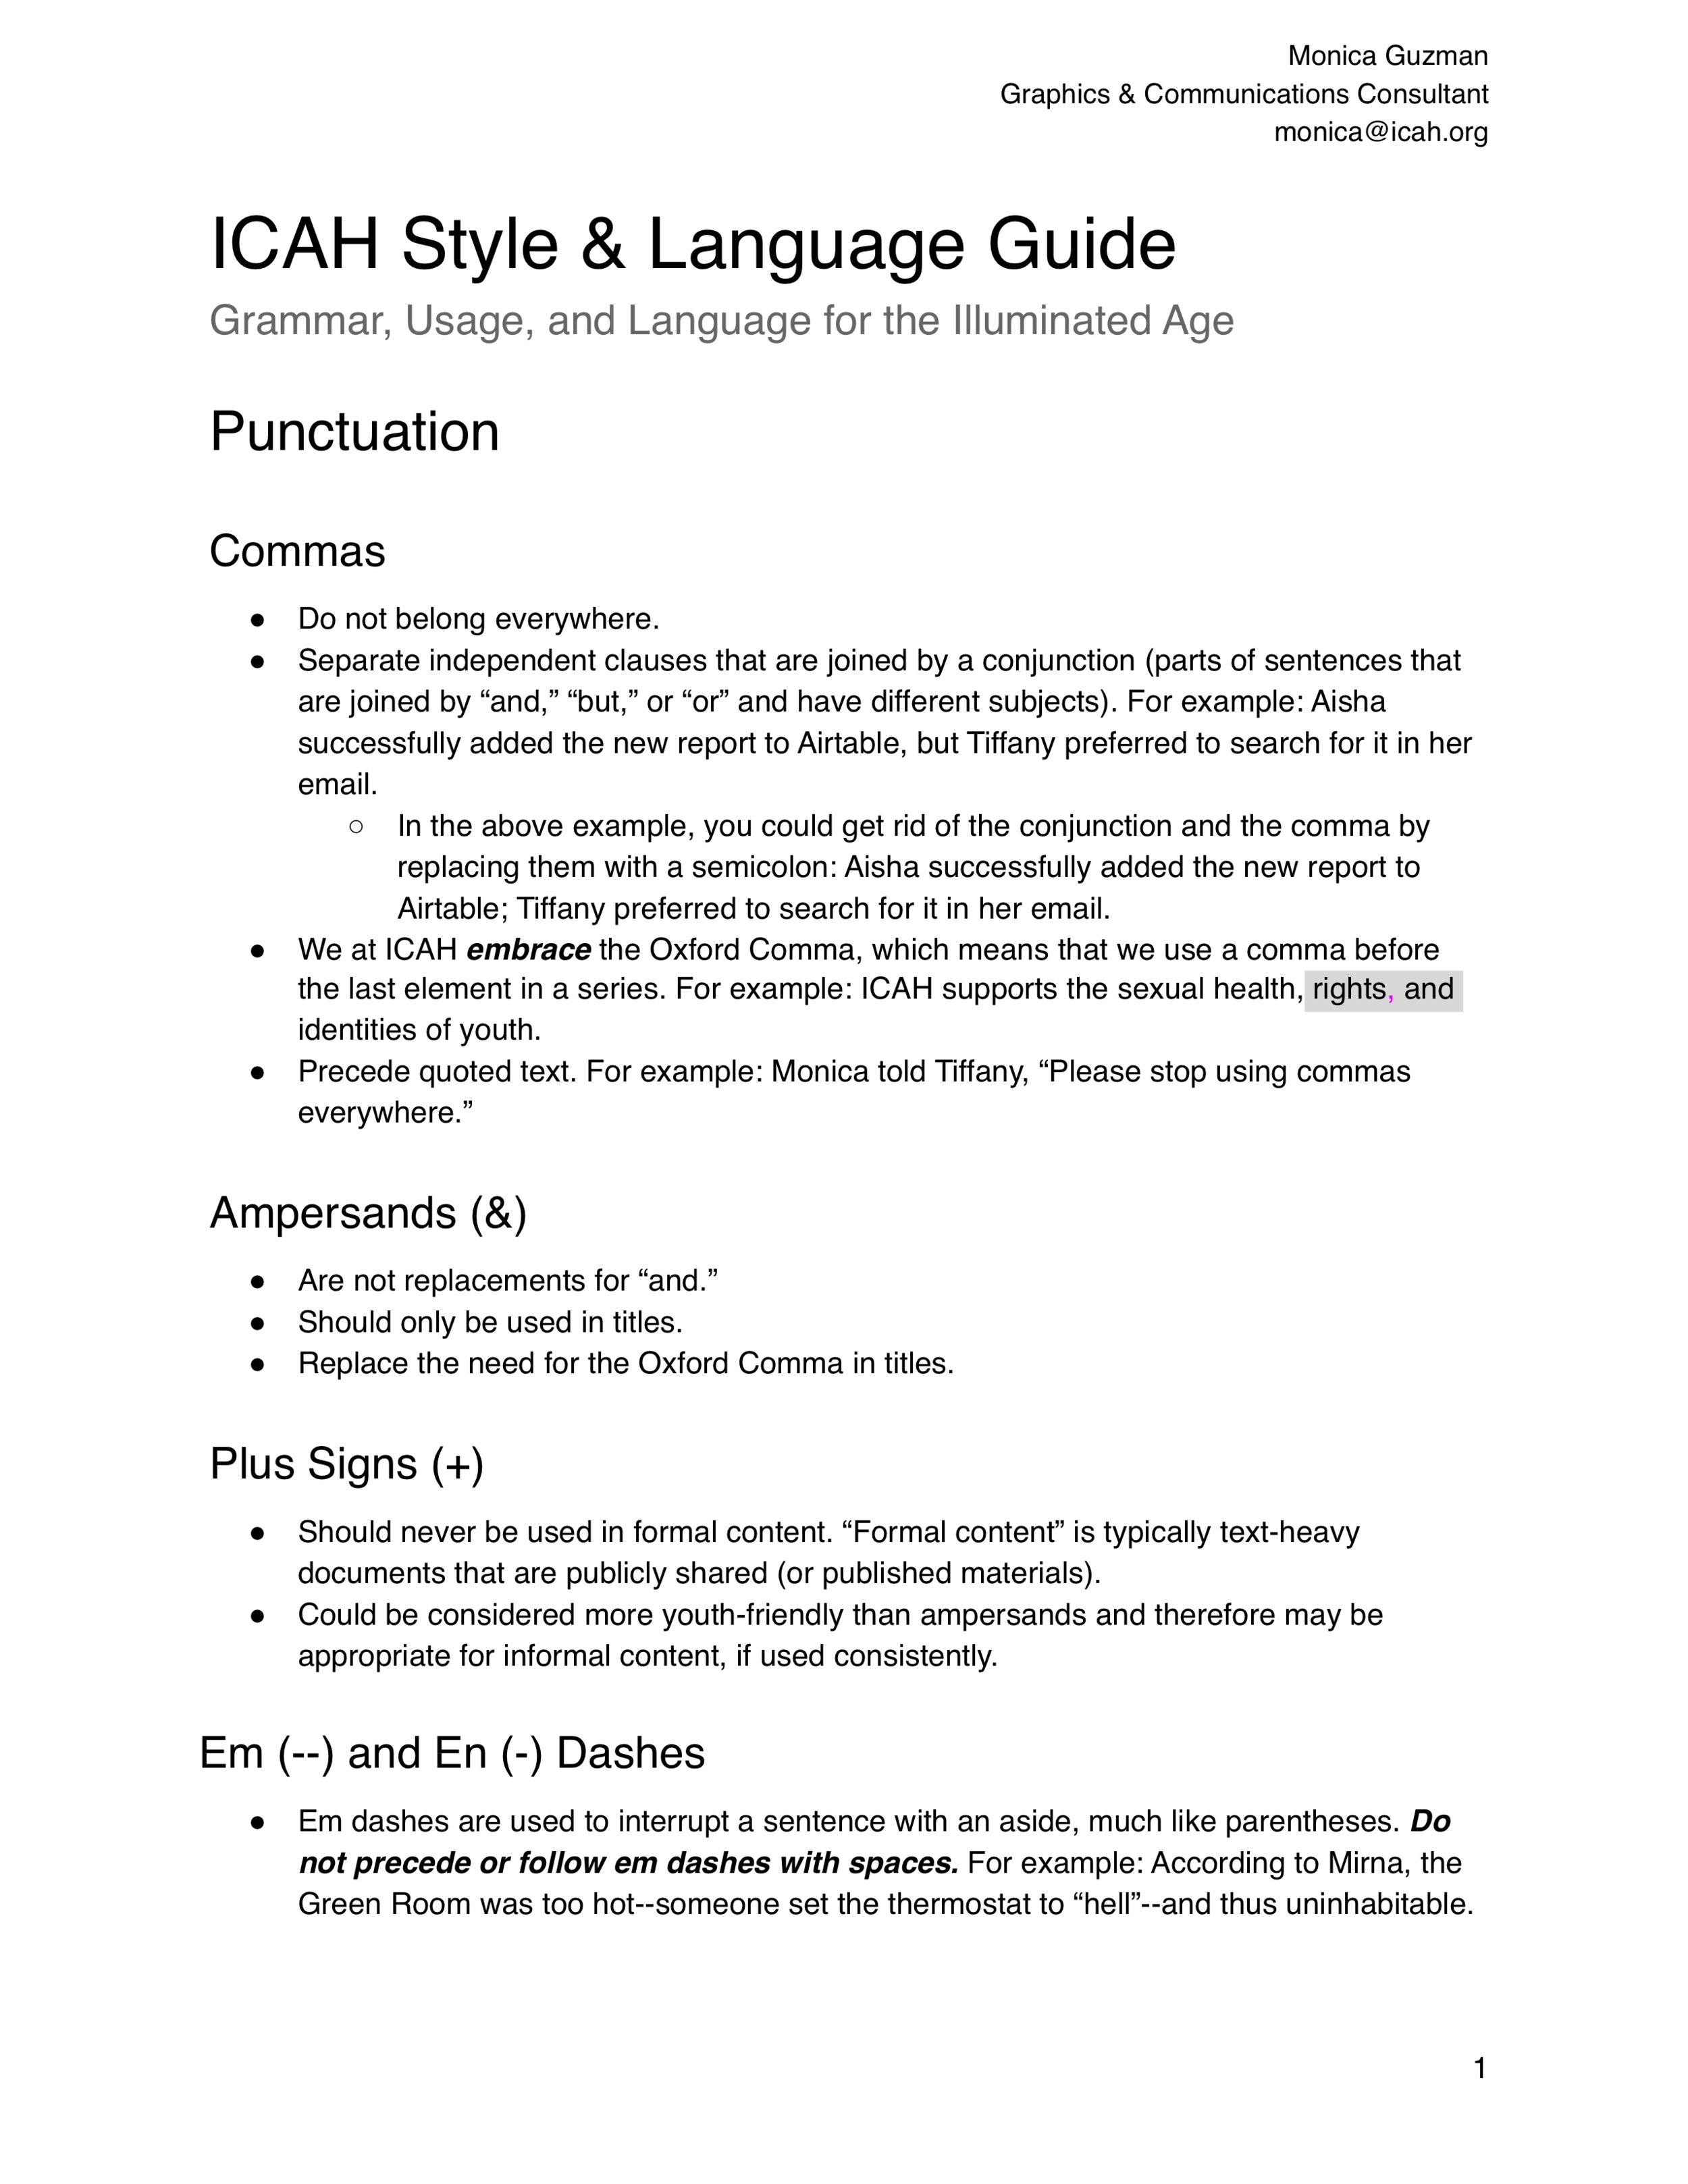 ICAH Style Guide page 1.png